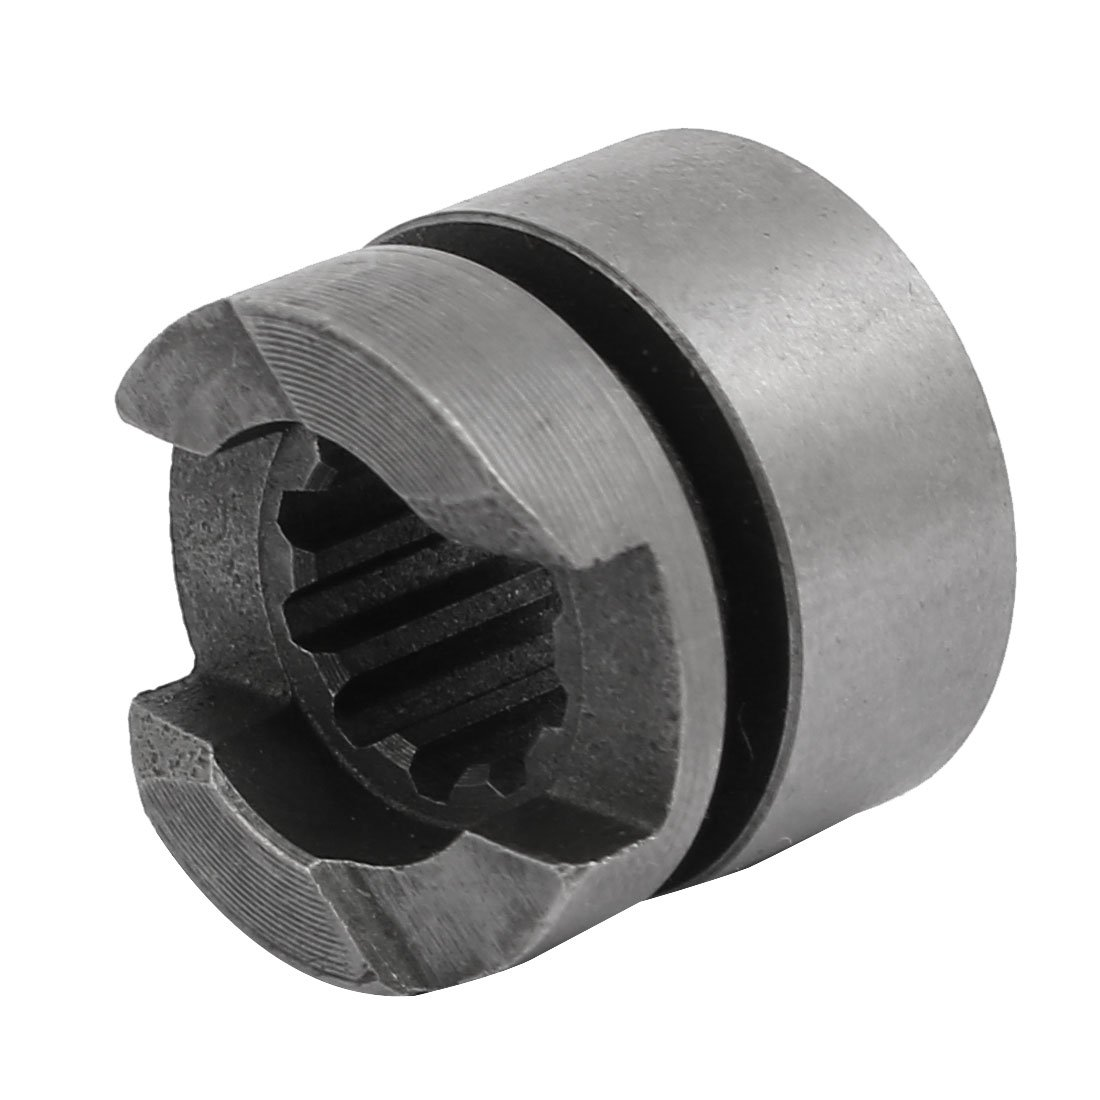 uxcell 22mmx19mm Metal 10 Teeth Clutch Gray for Makita HR2470 Electric Hammer